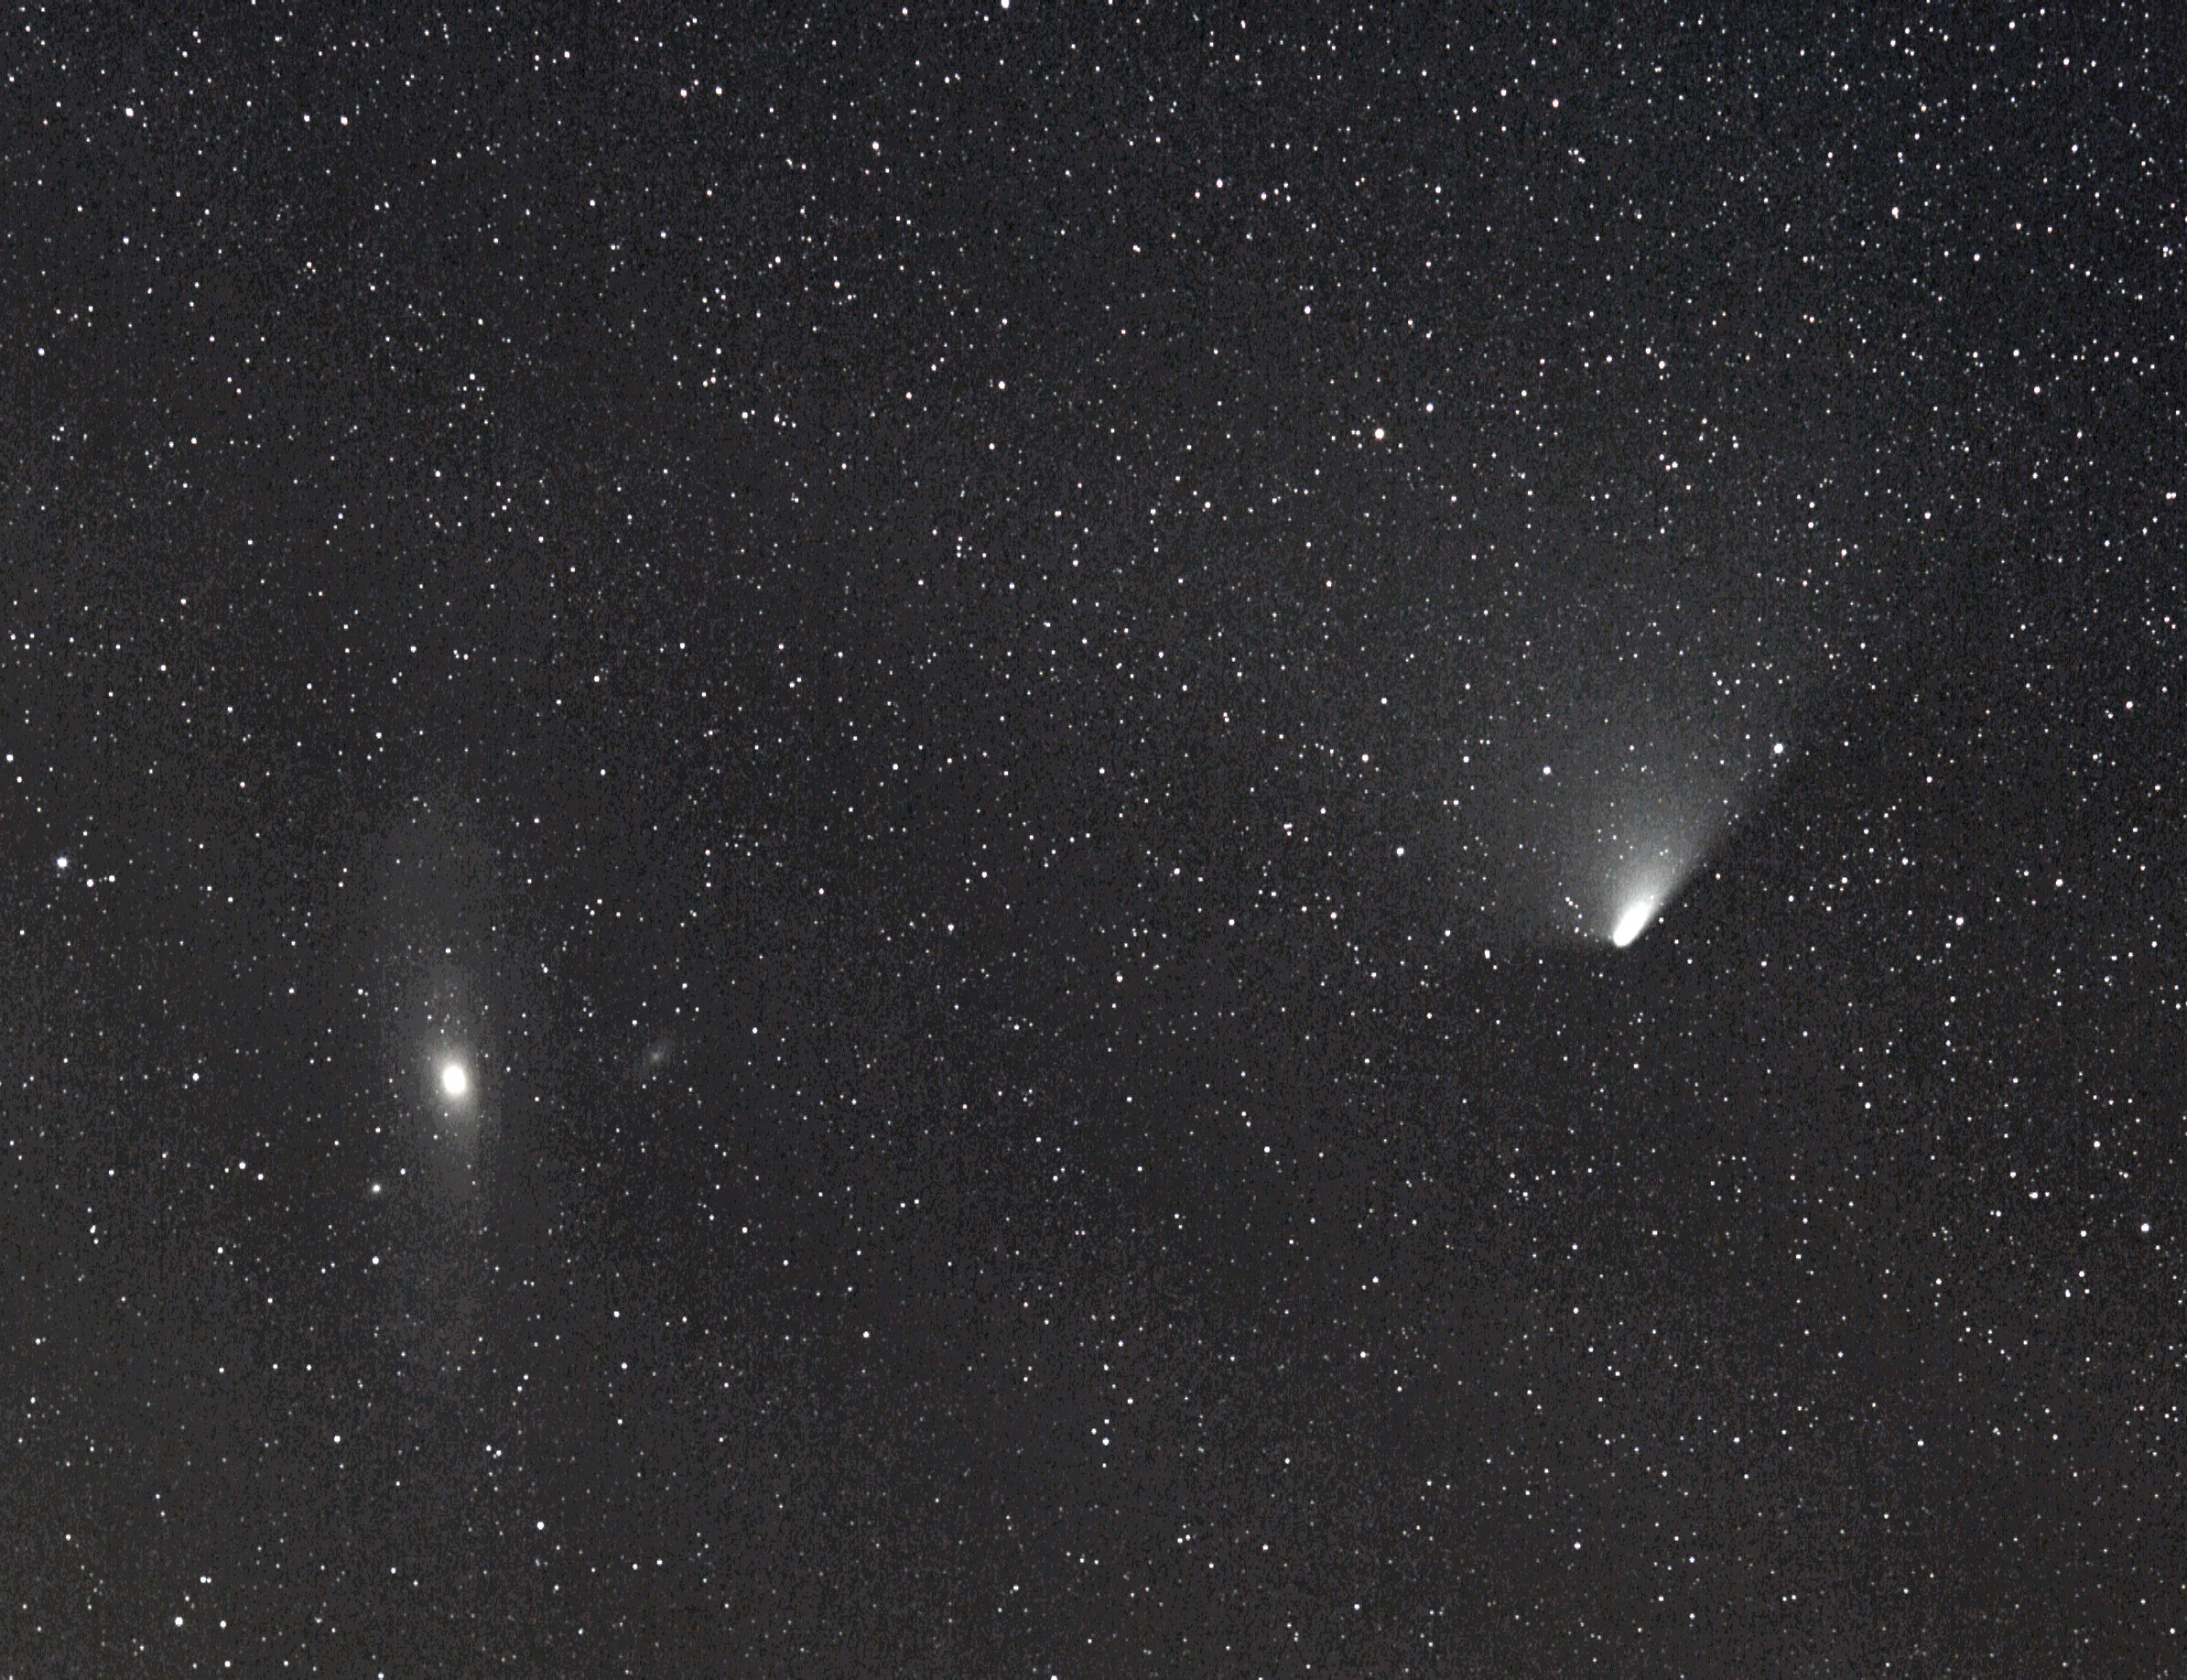 20130406, 20.24UT, Canon EOS 5Dii, EF135mm/2L @F2.8, ISO1600, 19x30s.